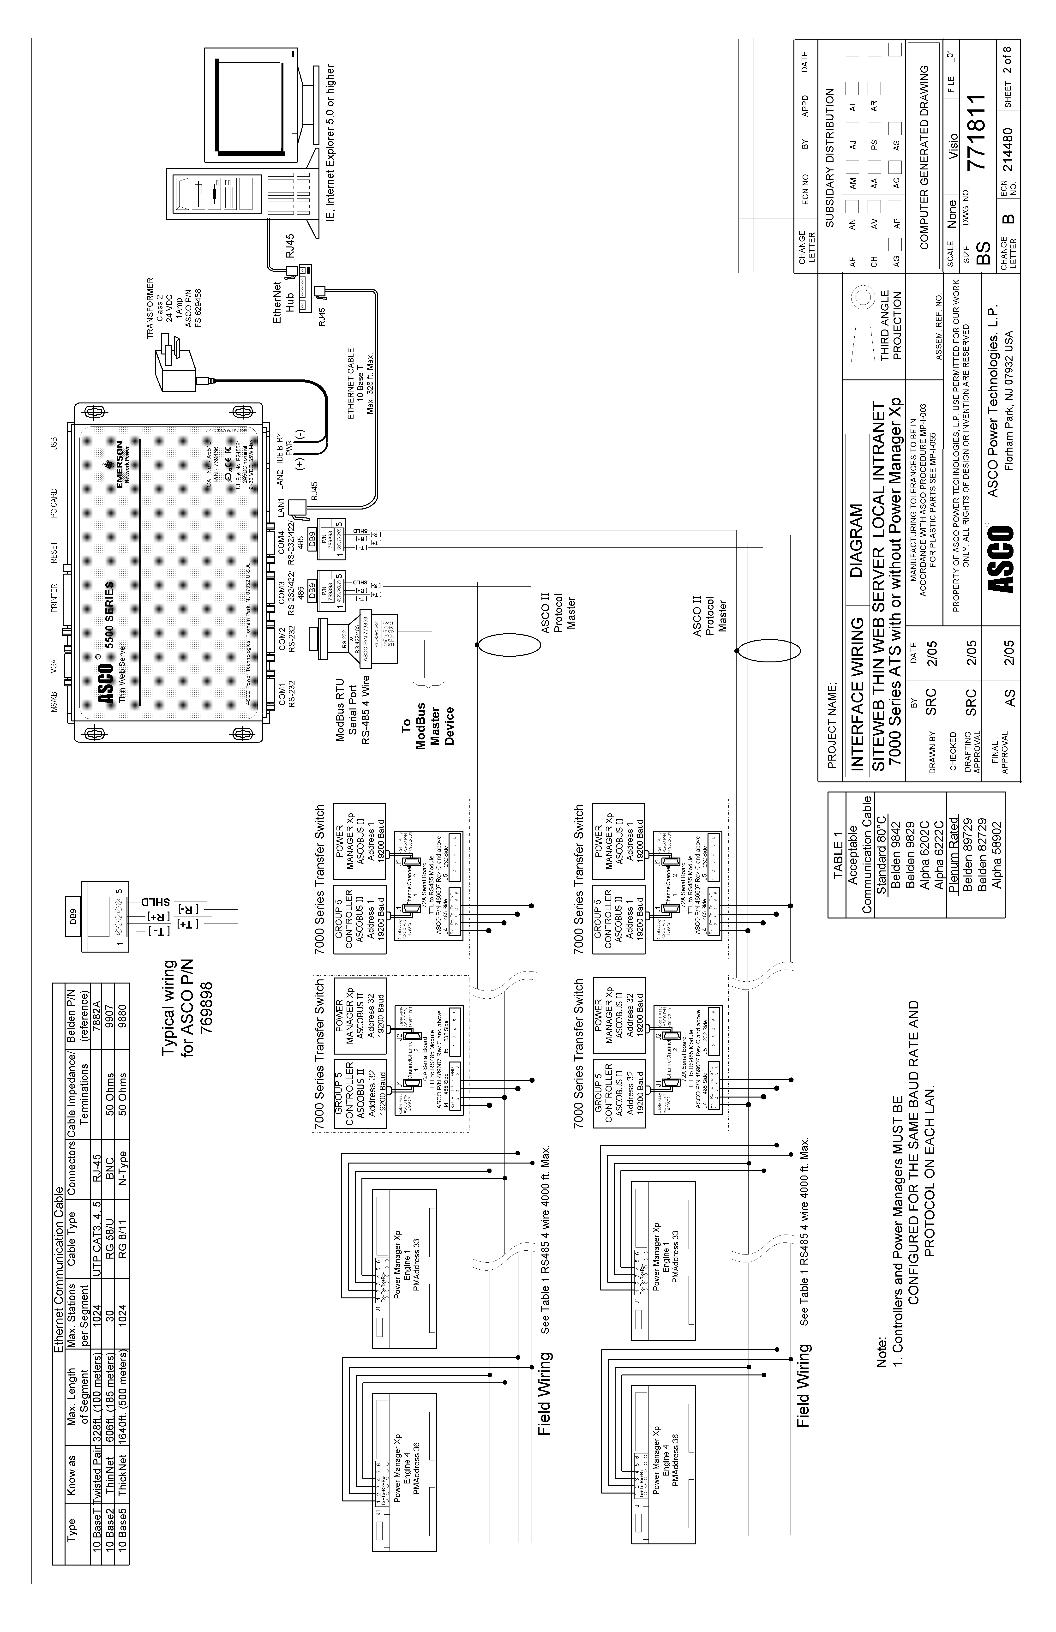 Asco Series Ats Wiring Diagram Download